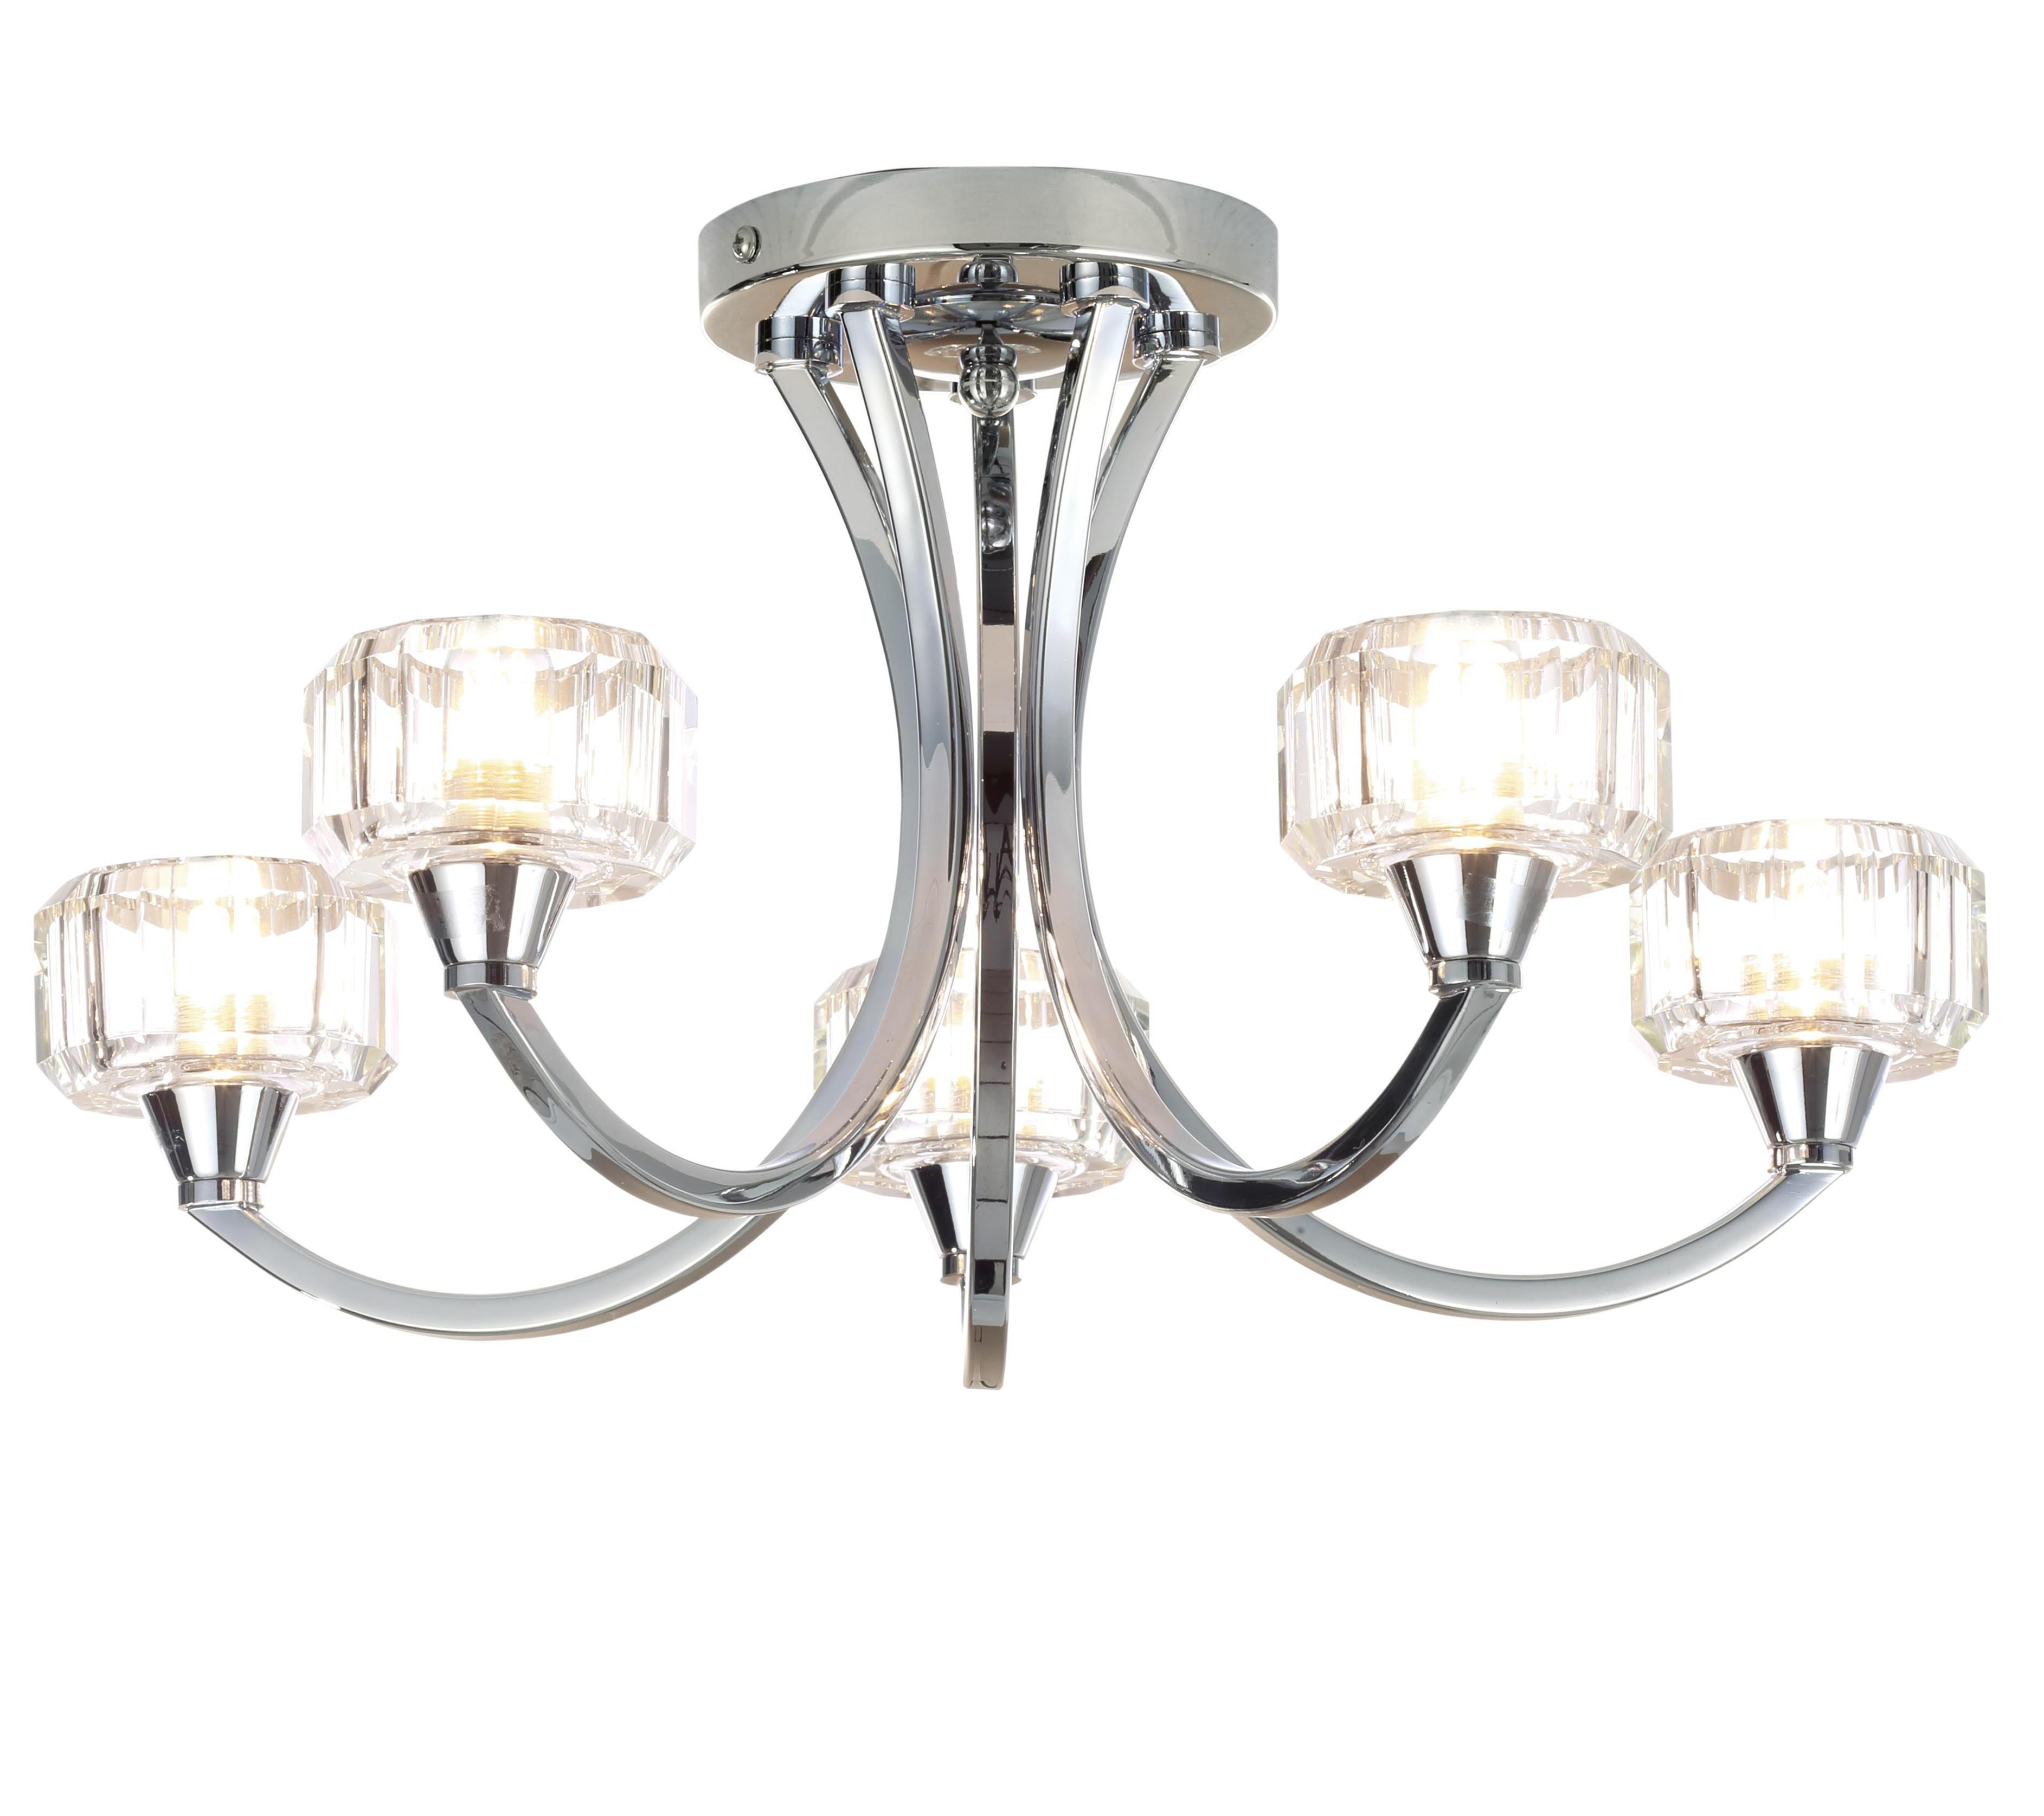 orara chrome effect 5 lamp bathroom ceiling light